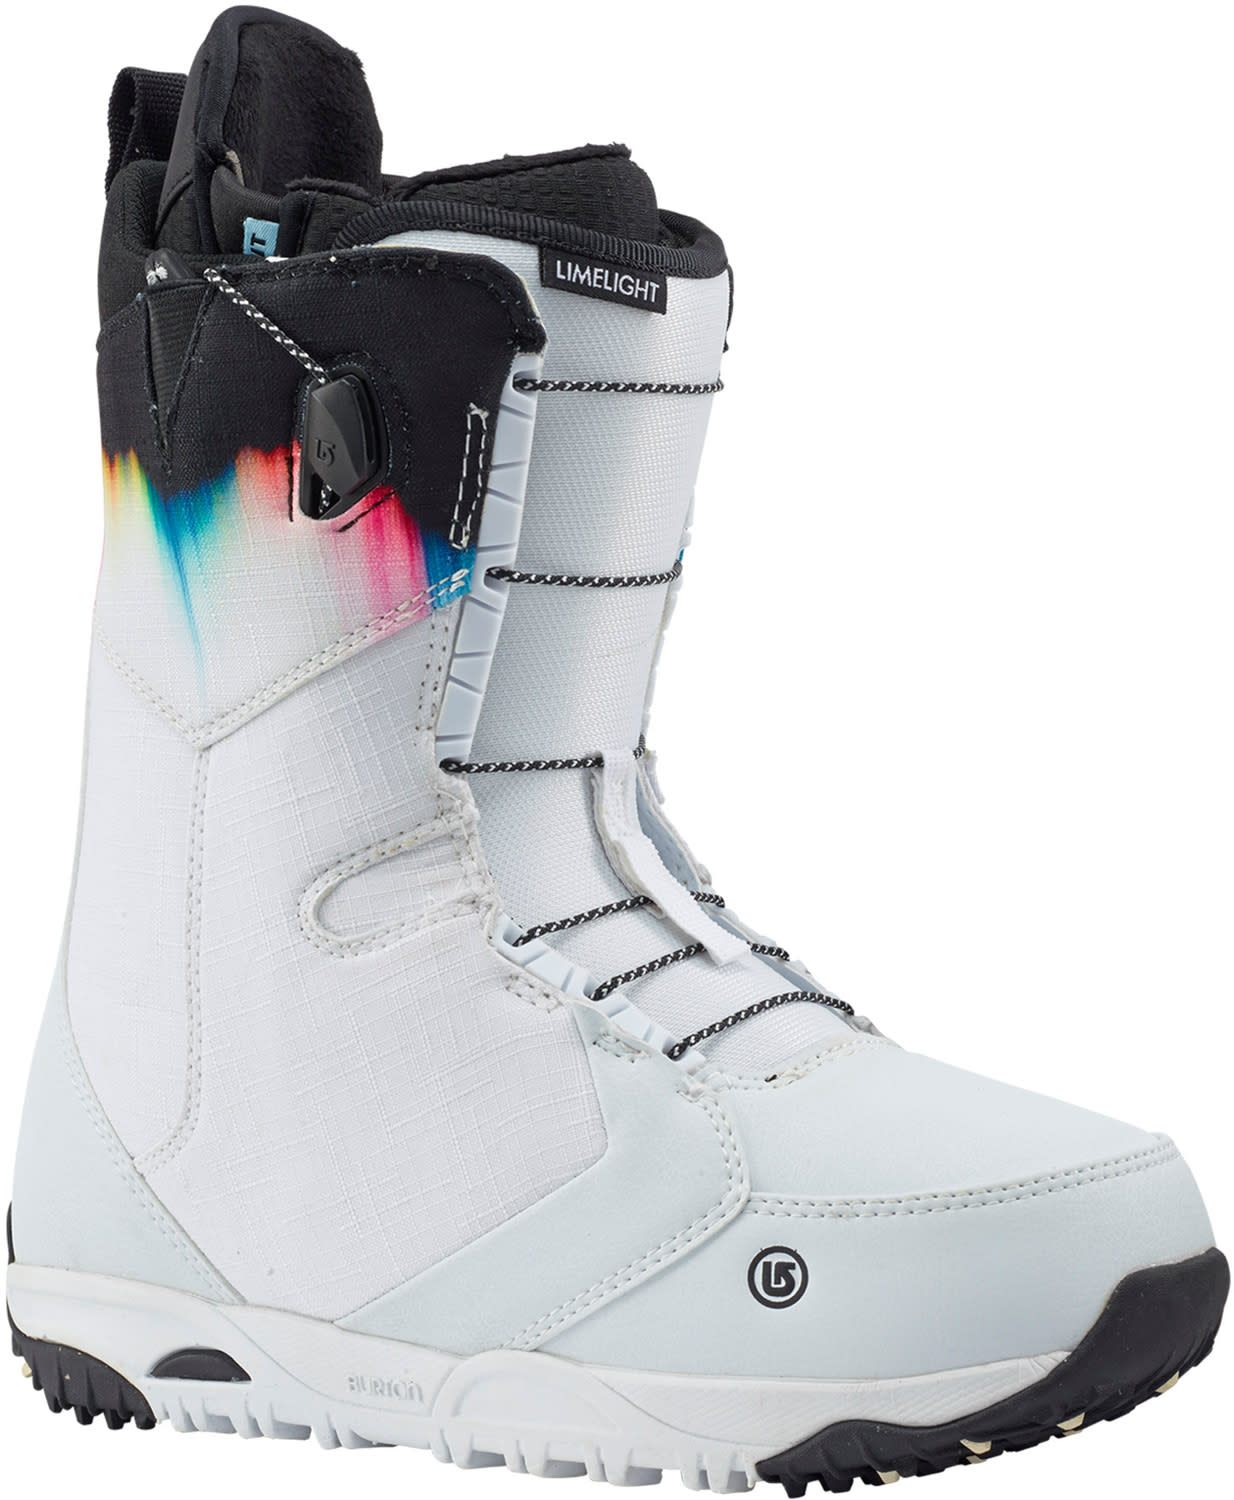 Burton limelight snowboard boots womens 2018 for Housse burton snowboard